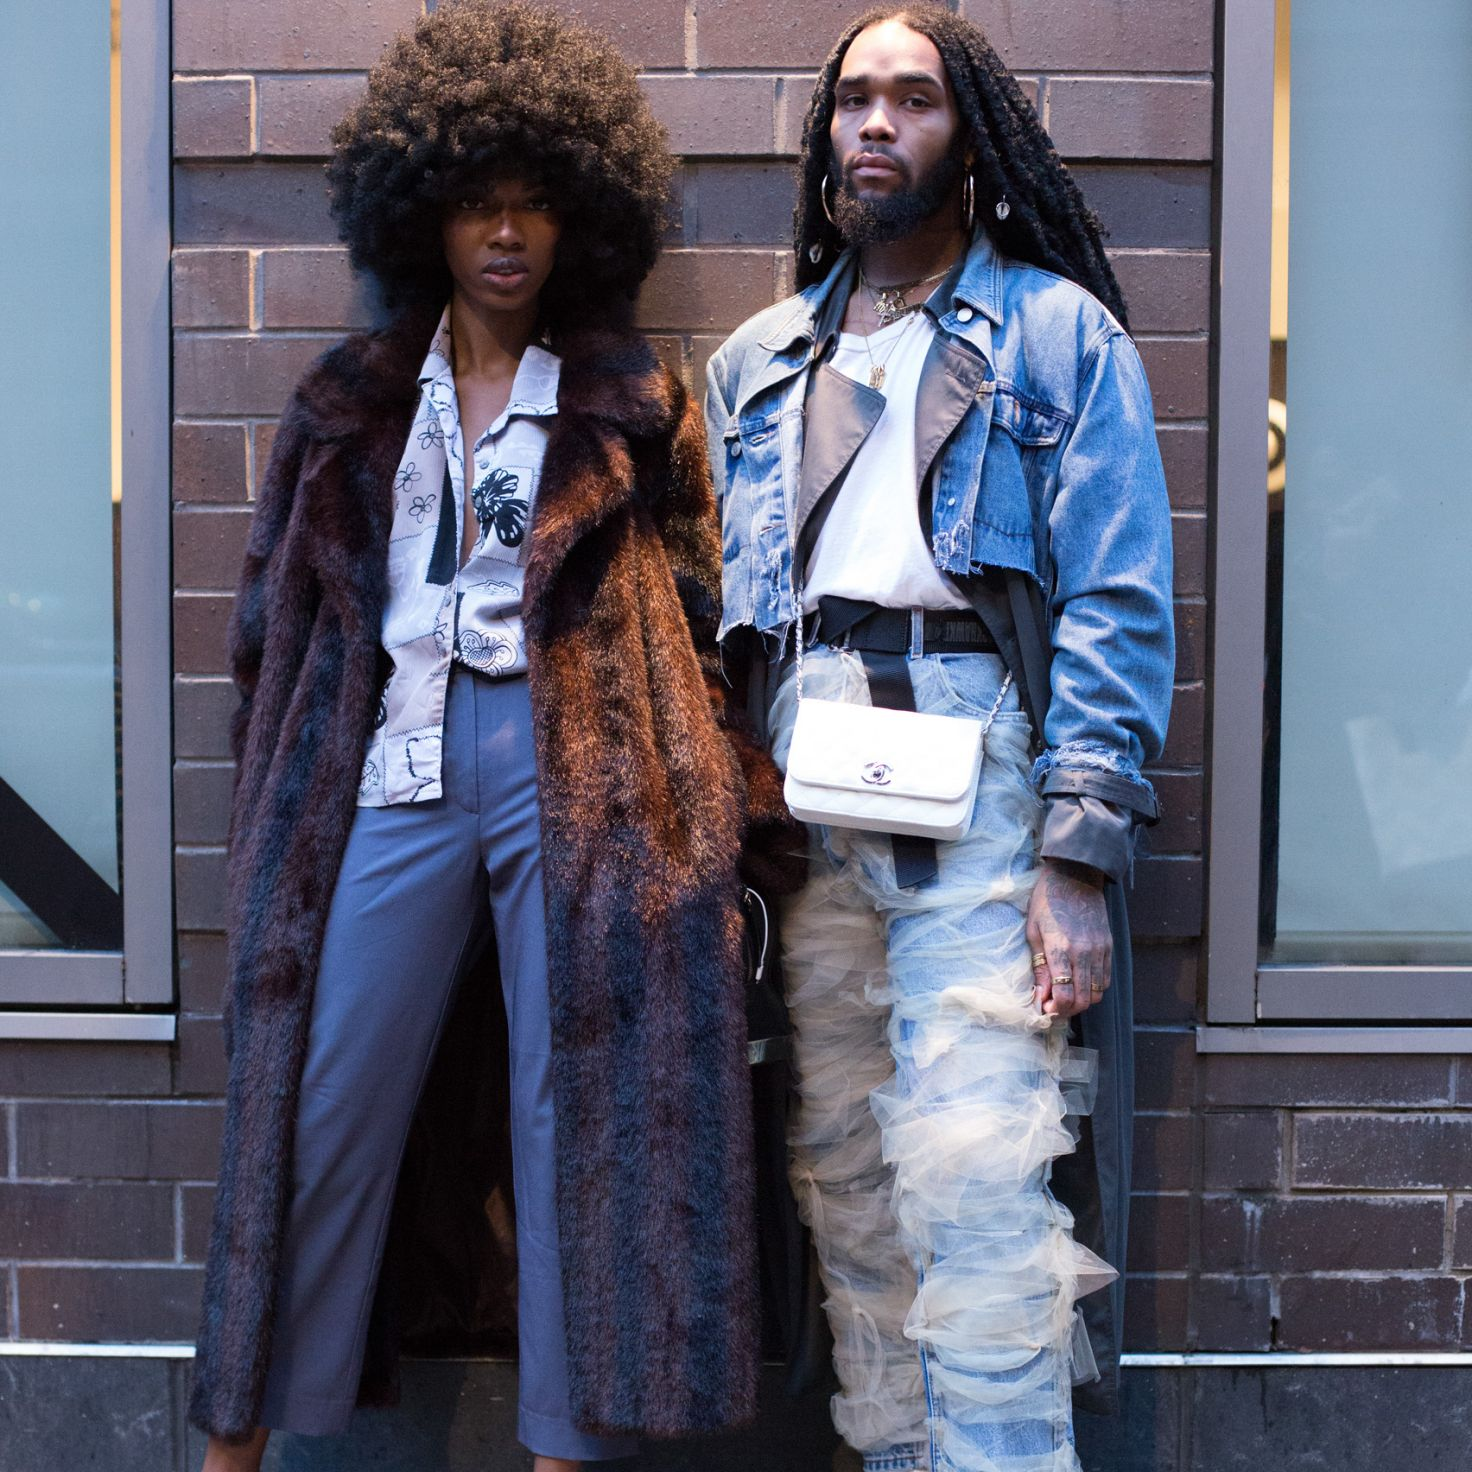 Street Style Squad Goals: These Dynamic Duos Came To Slay At ESSENCE Fashion House